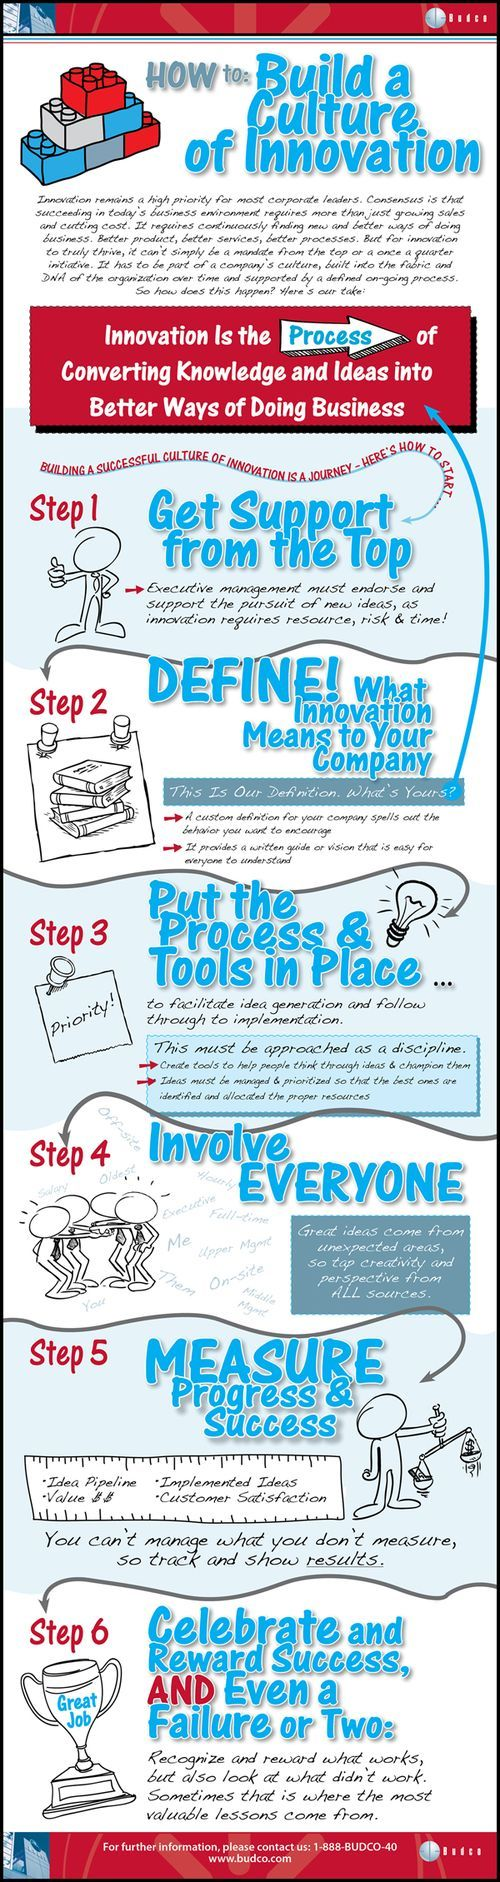 #Entrepreneurship: Building a Culture of Innovation!Buildings Innovation,  Internet Site, Innovation Infographic,  Website, Marketing Ideas Infographic, Company Culture, Business Innovation Ideas, Web Site, Leadership Ideas